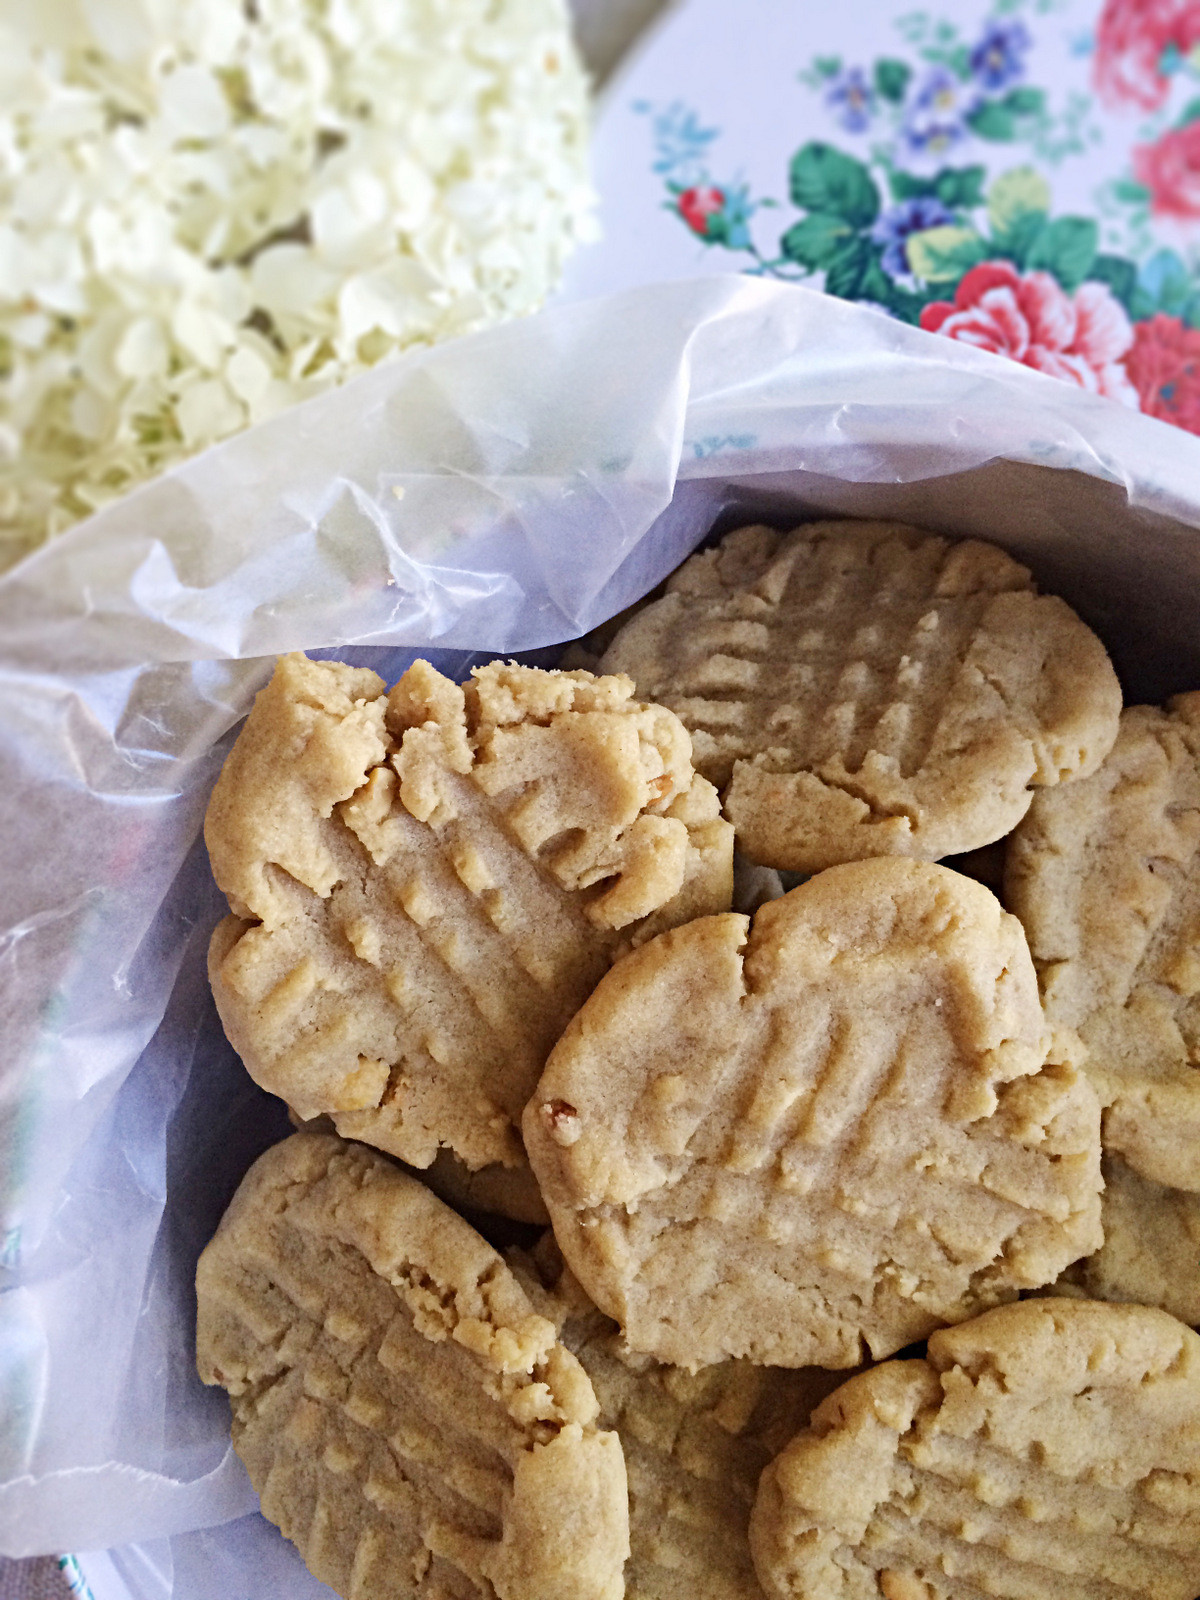 Peanut Butter Cookies Recipes  Peanut Butter Cookies Baking for friends